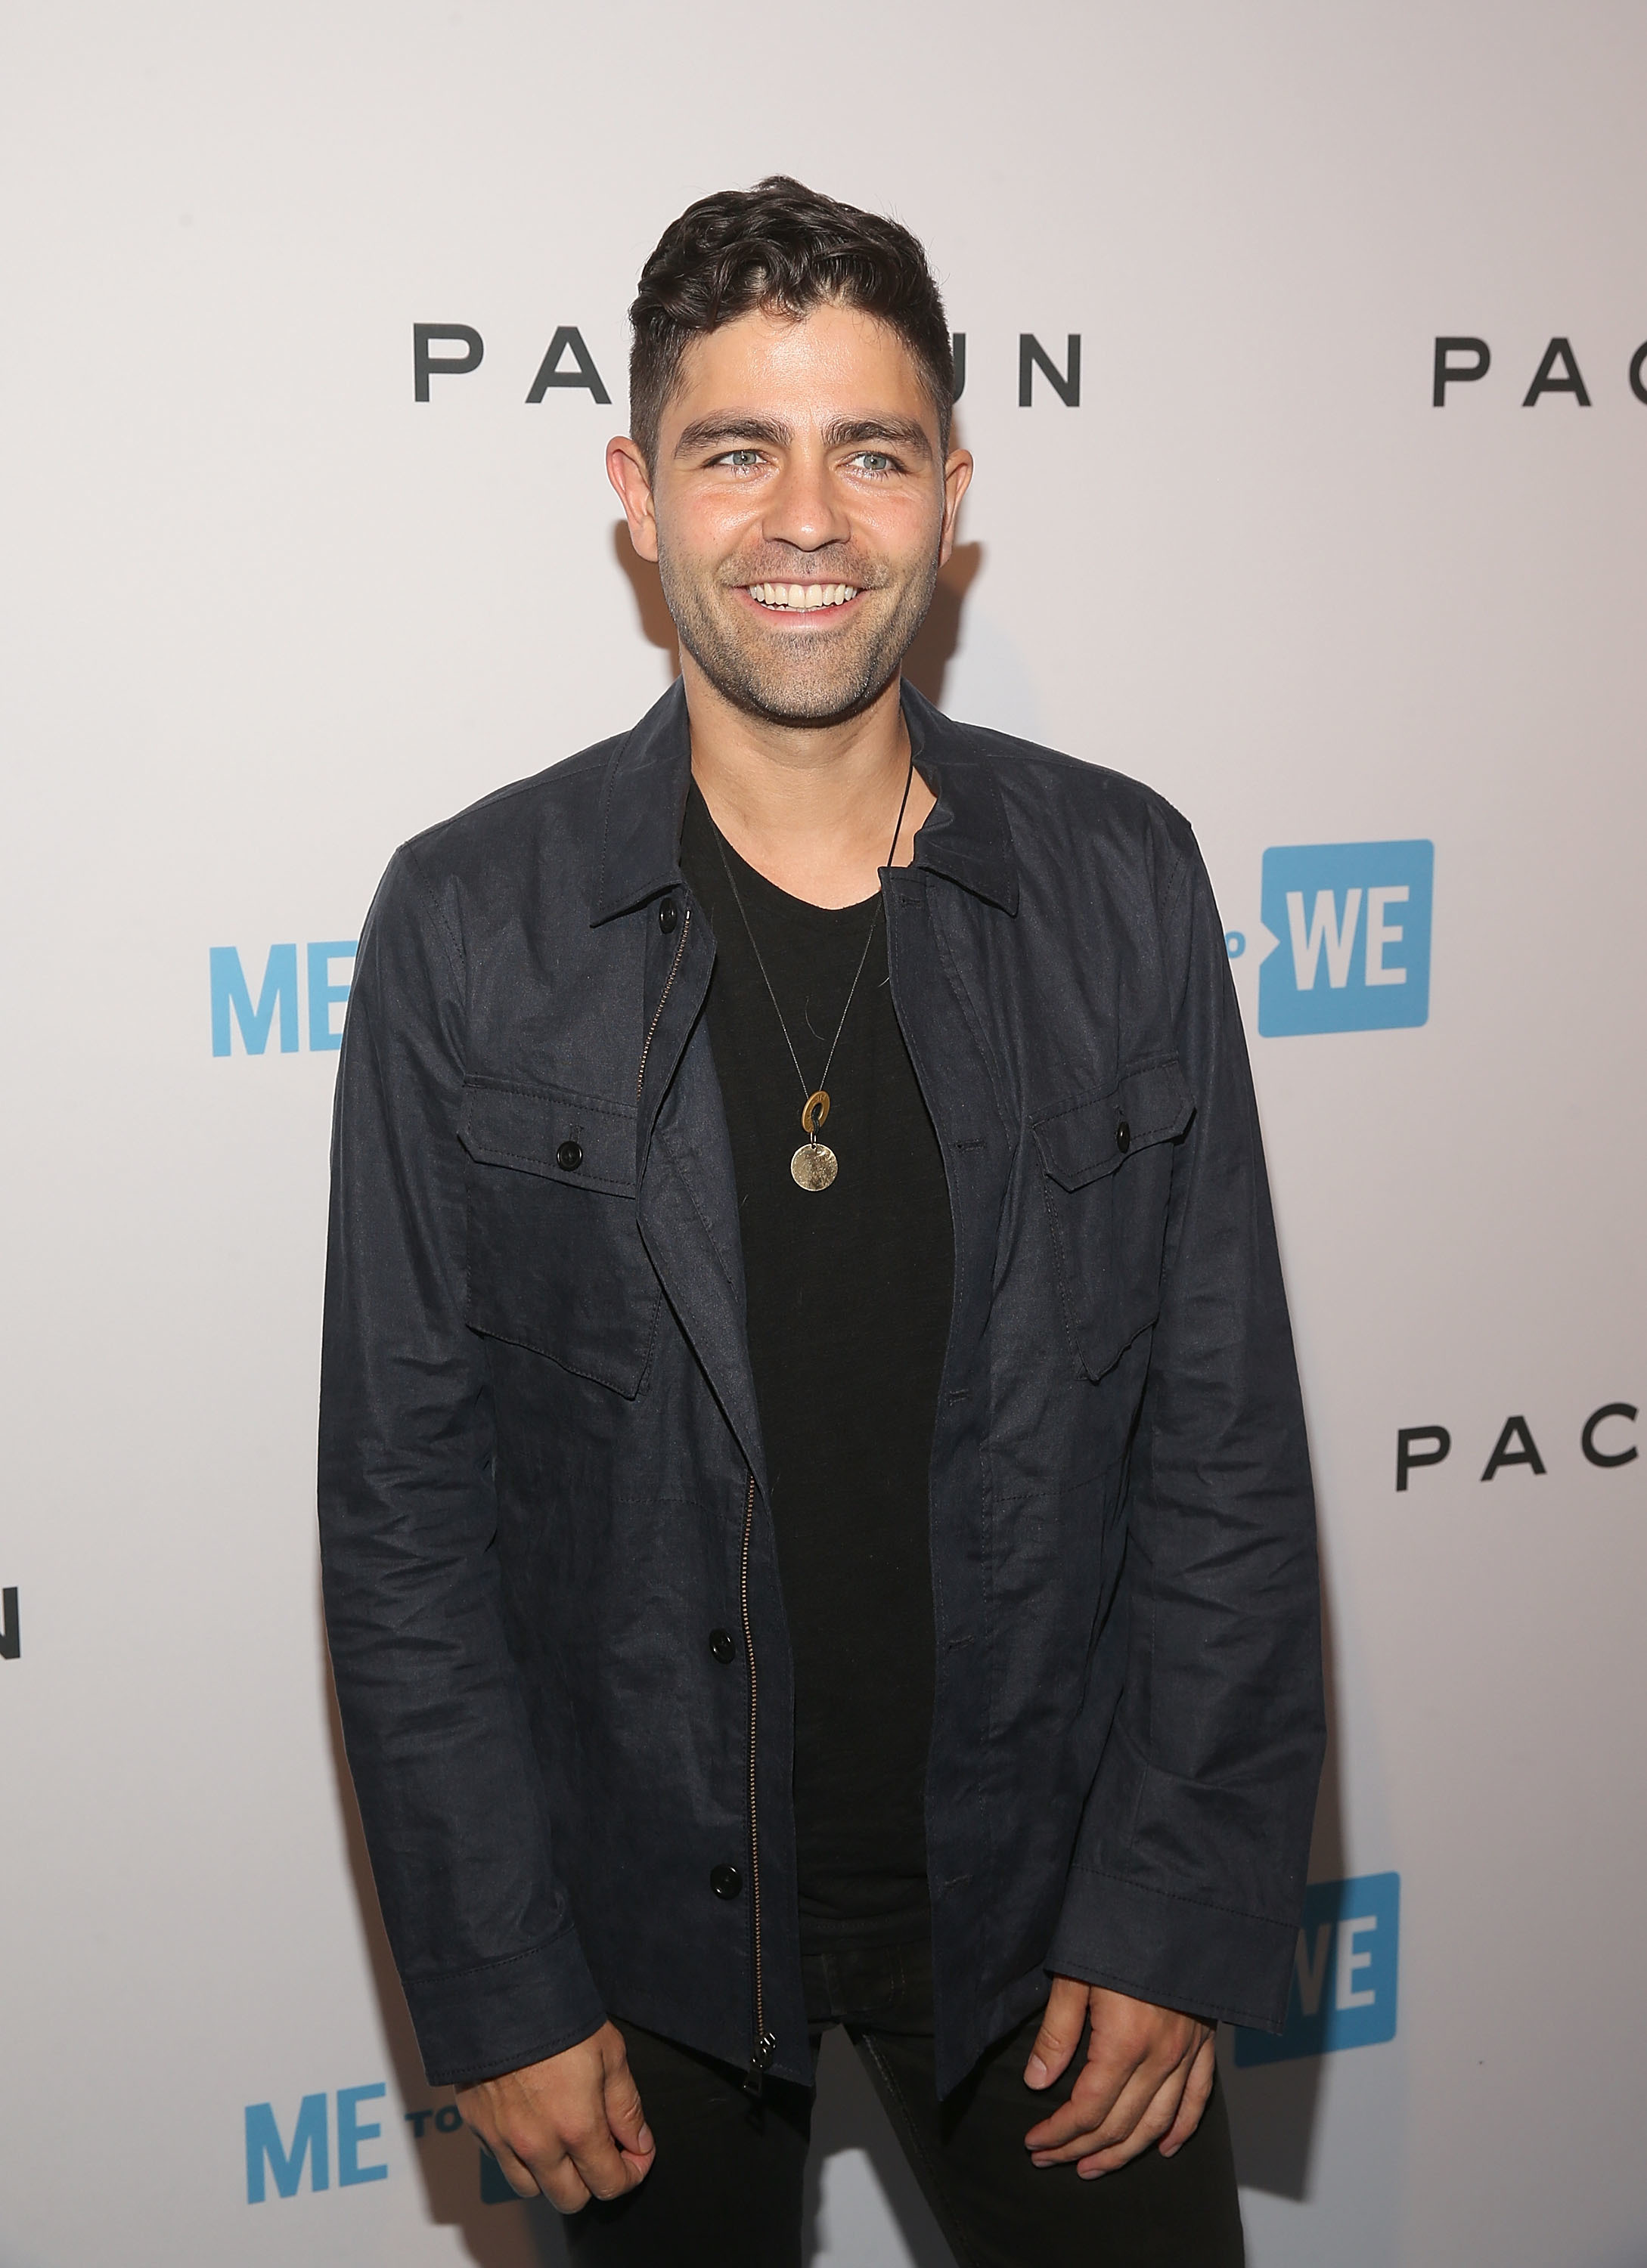 Adrian Grenier attends Party with a Purpose, the Official Pre Party to WE Day California at The Peppermint Club in Los Angeles on April 18, 2018.